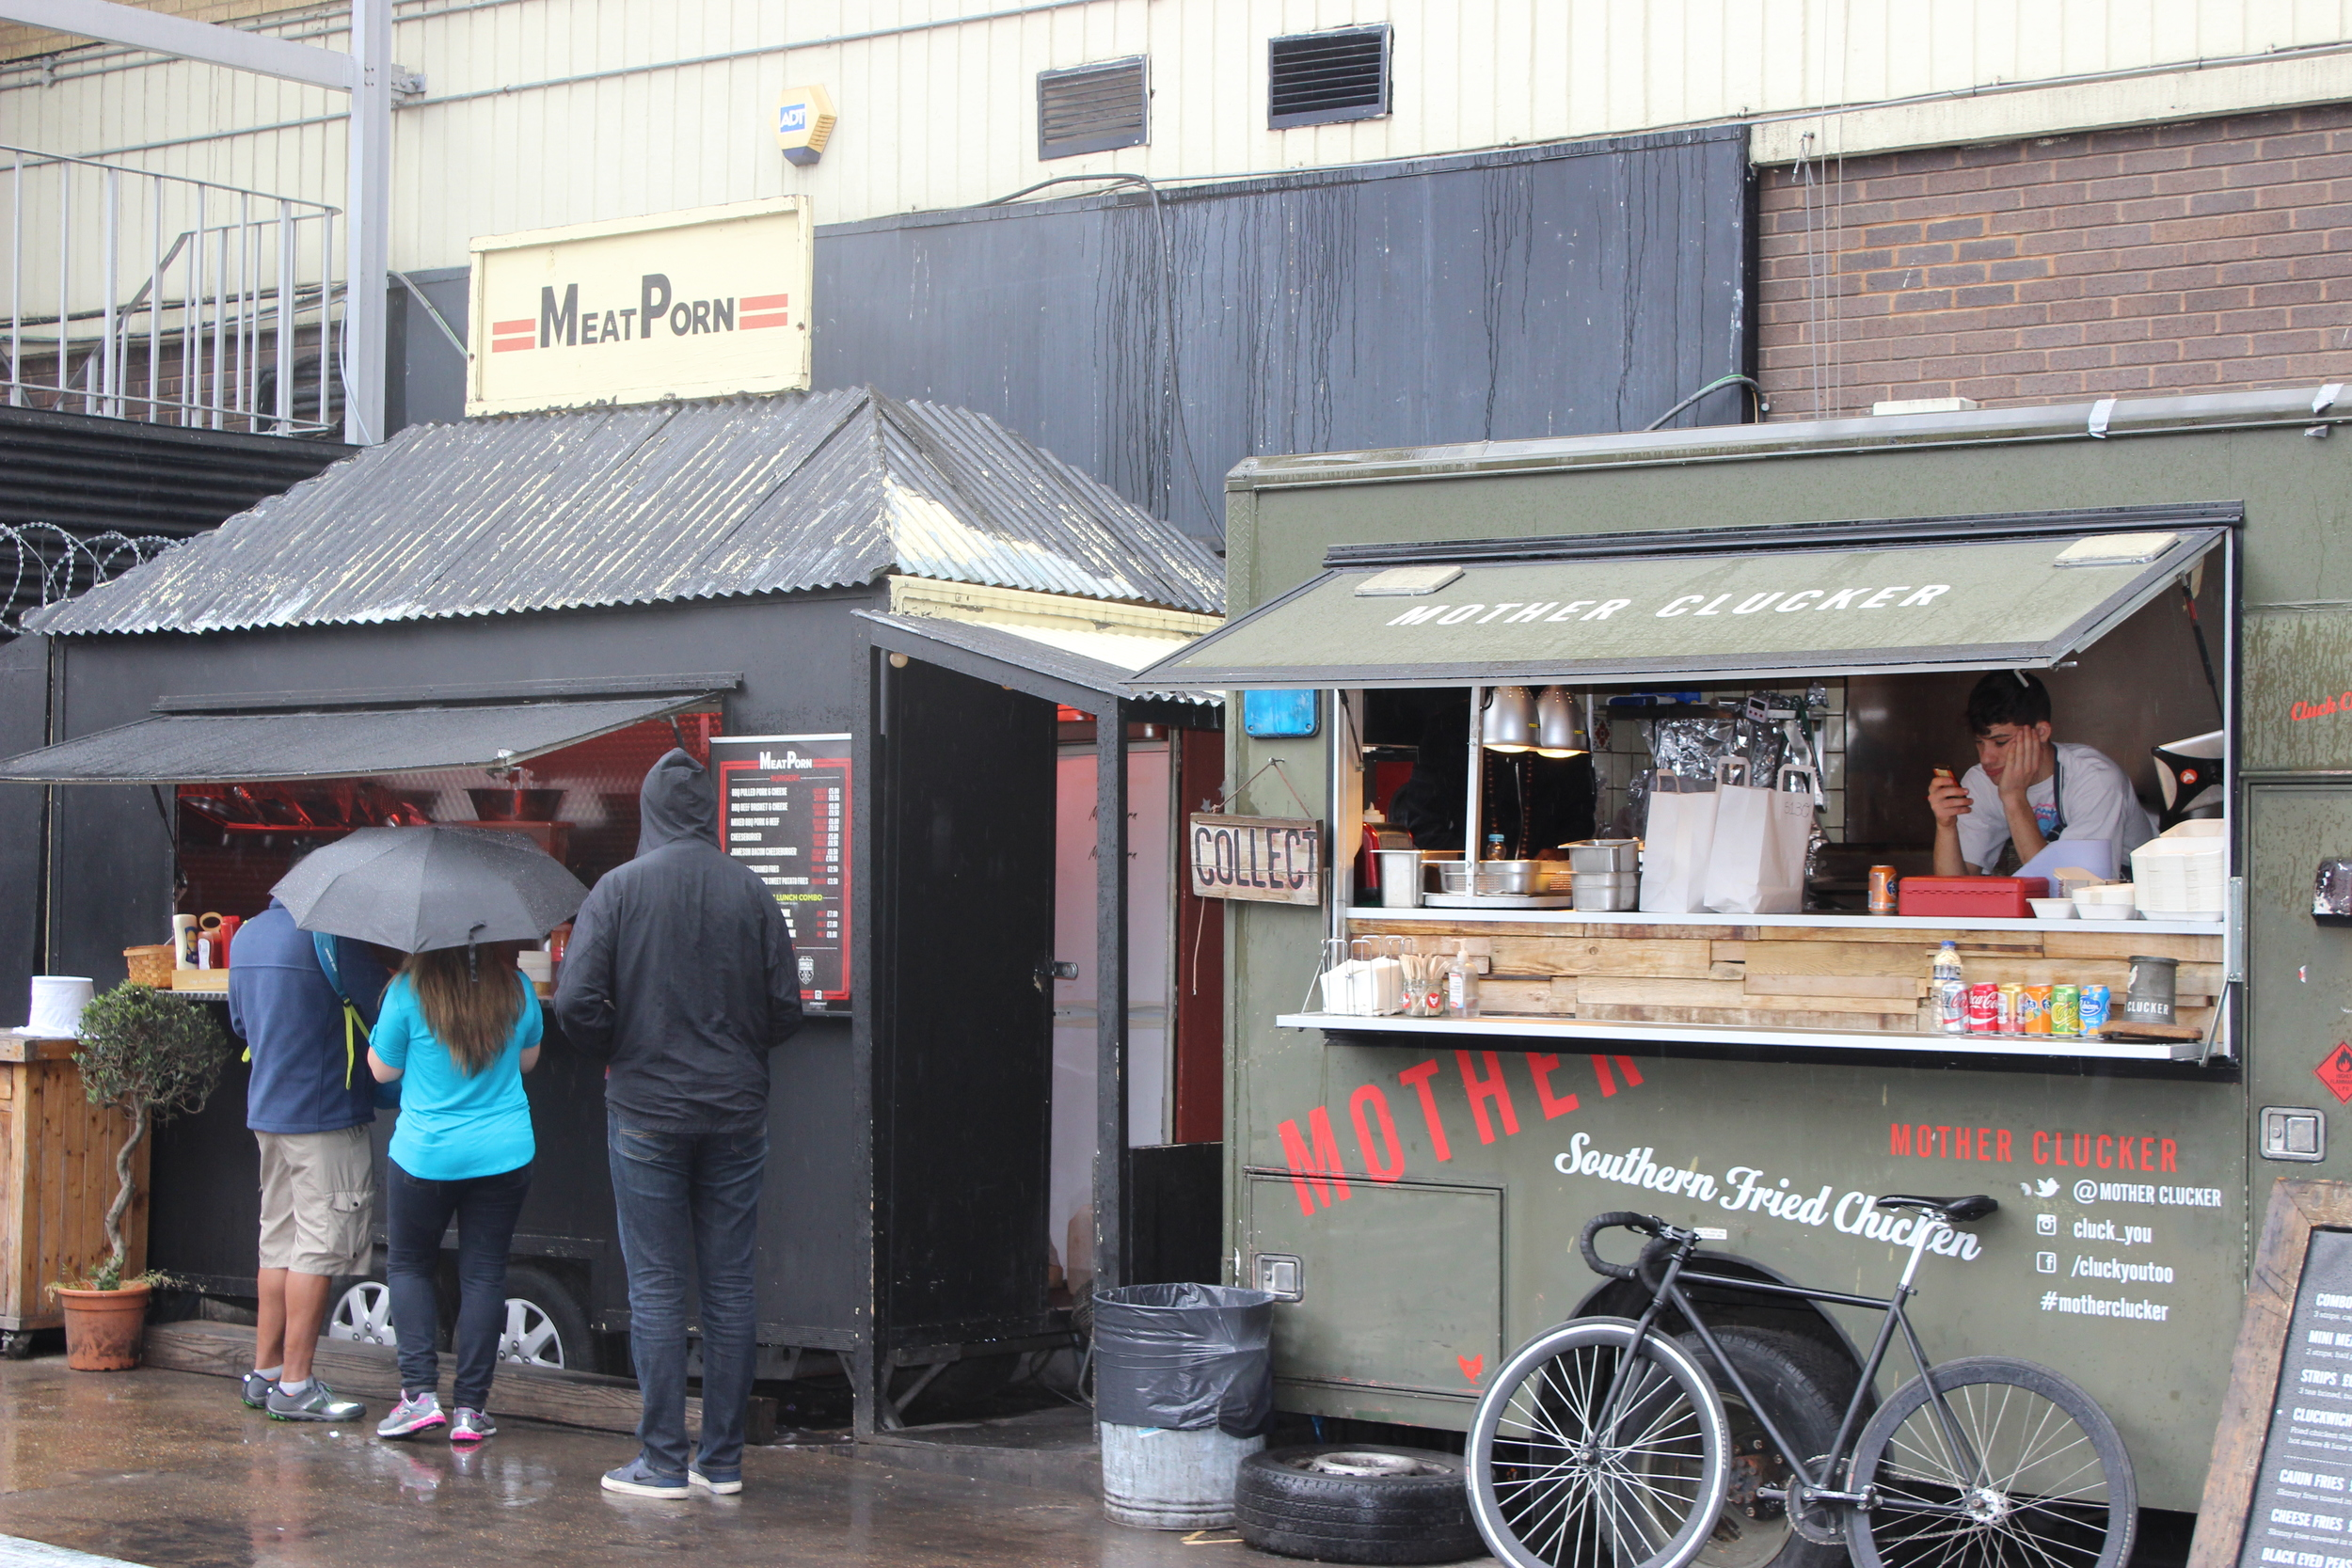 There are plenty of delicious street food options!